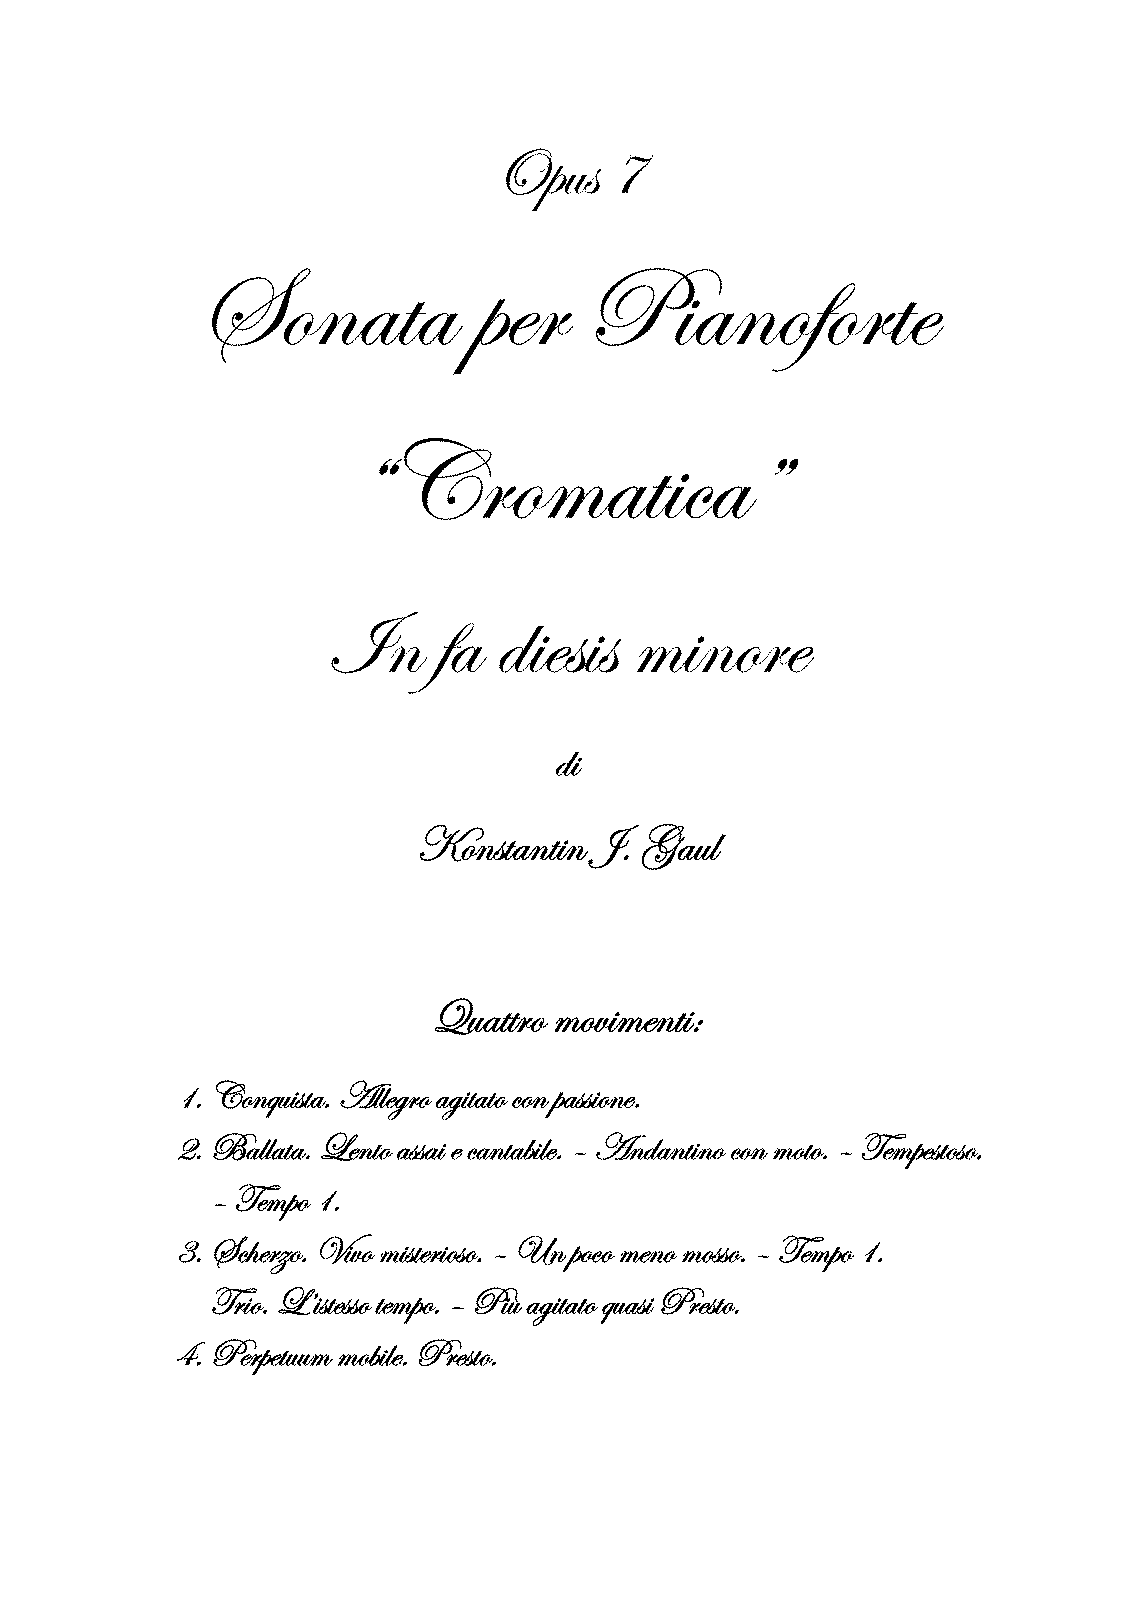 PMLP243663-piano sonata cromatica in f sharp minor.pdf